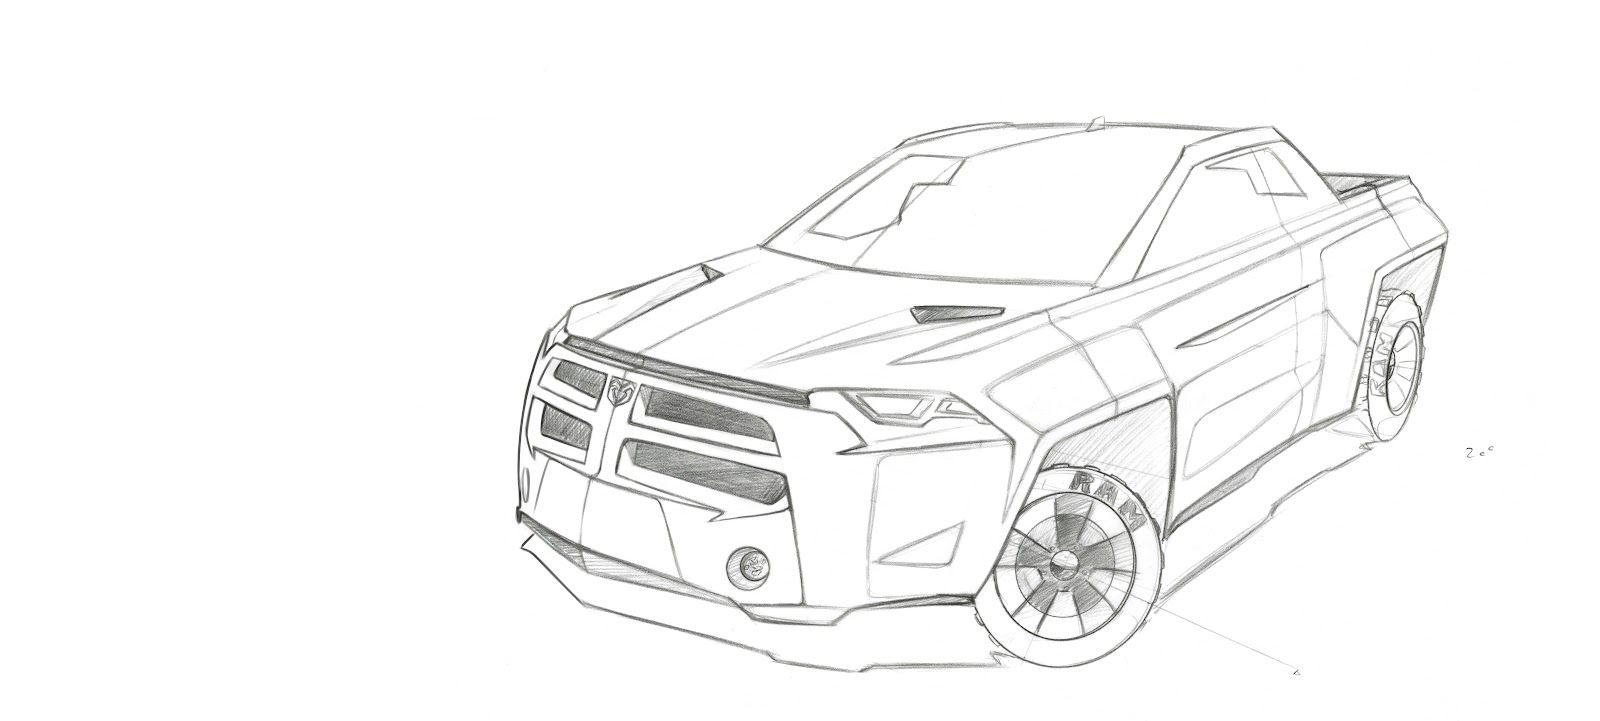 Dodge Truck Coloring Page Pictures To Pin On Pinterest Dodge Truck Coloring Pages